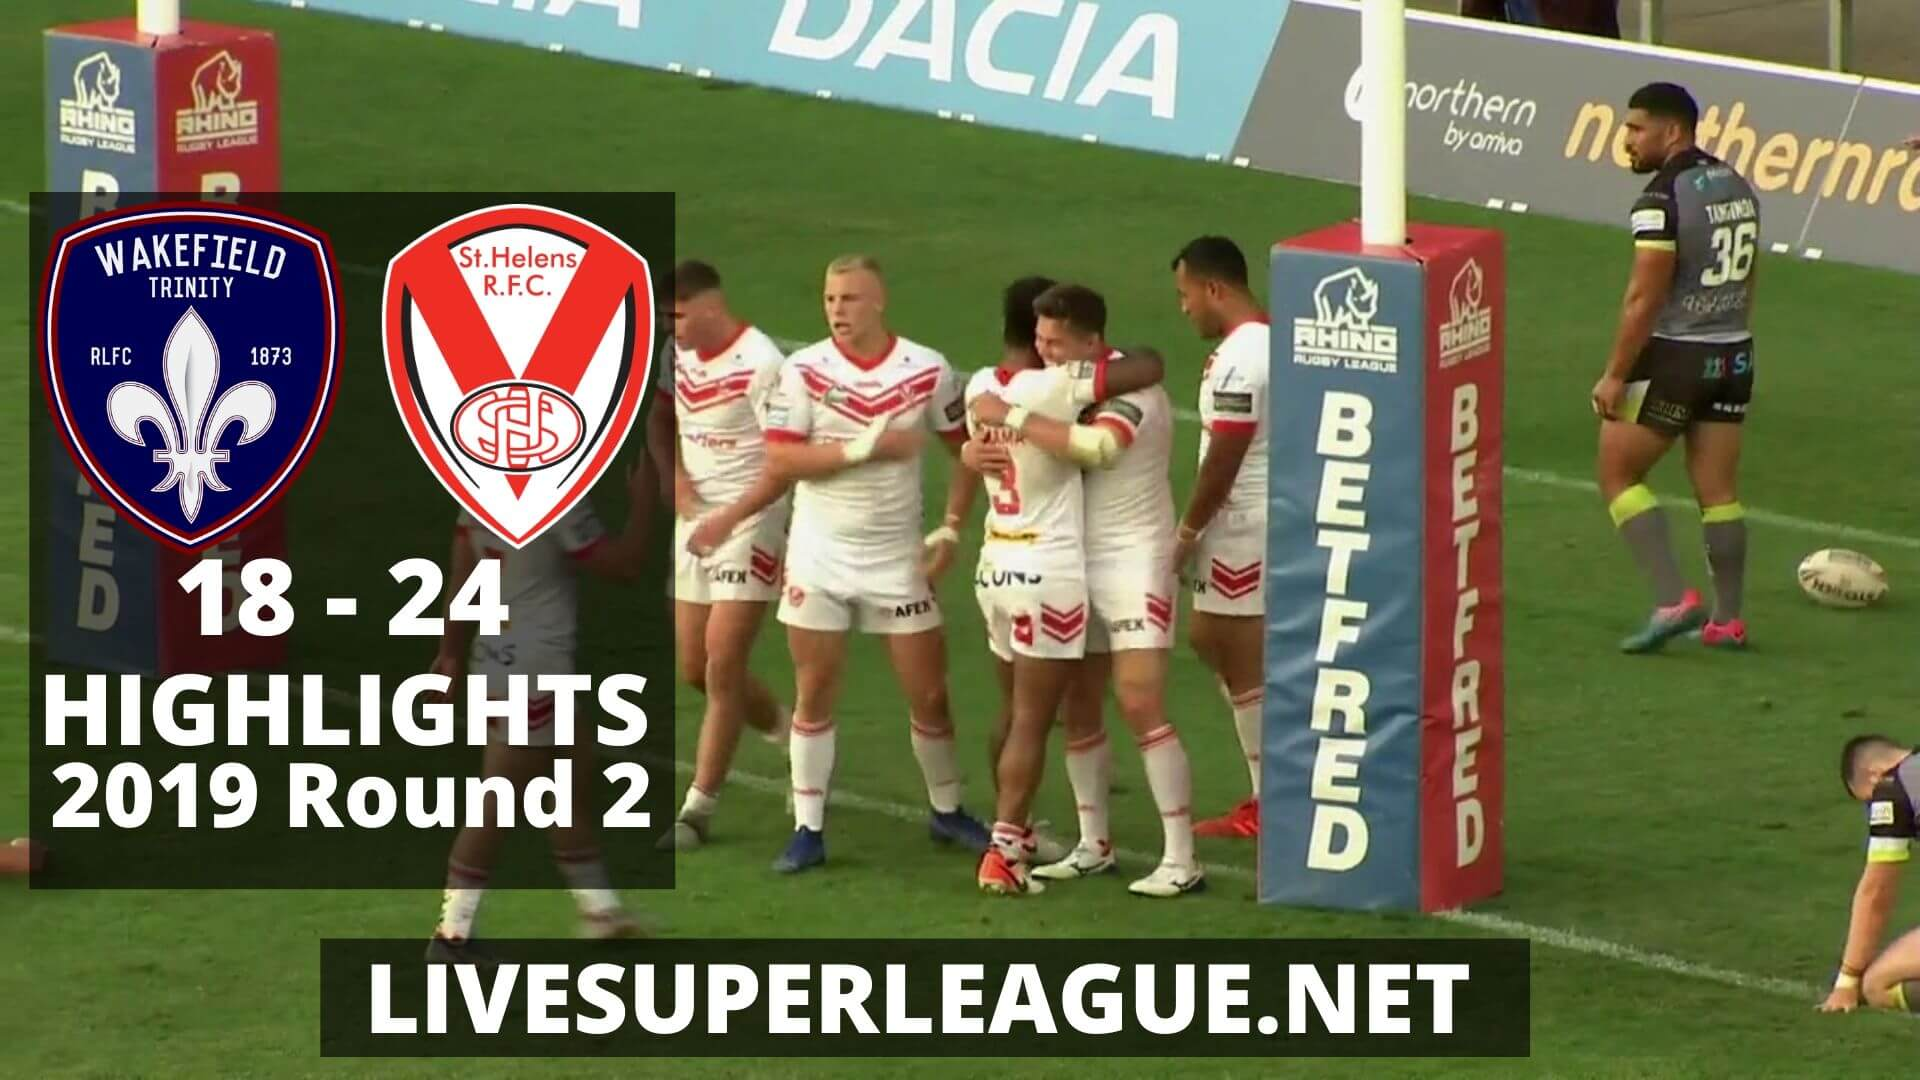 Wakefield Trinity Vs St Helens Highlights 2019 Round 2